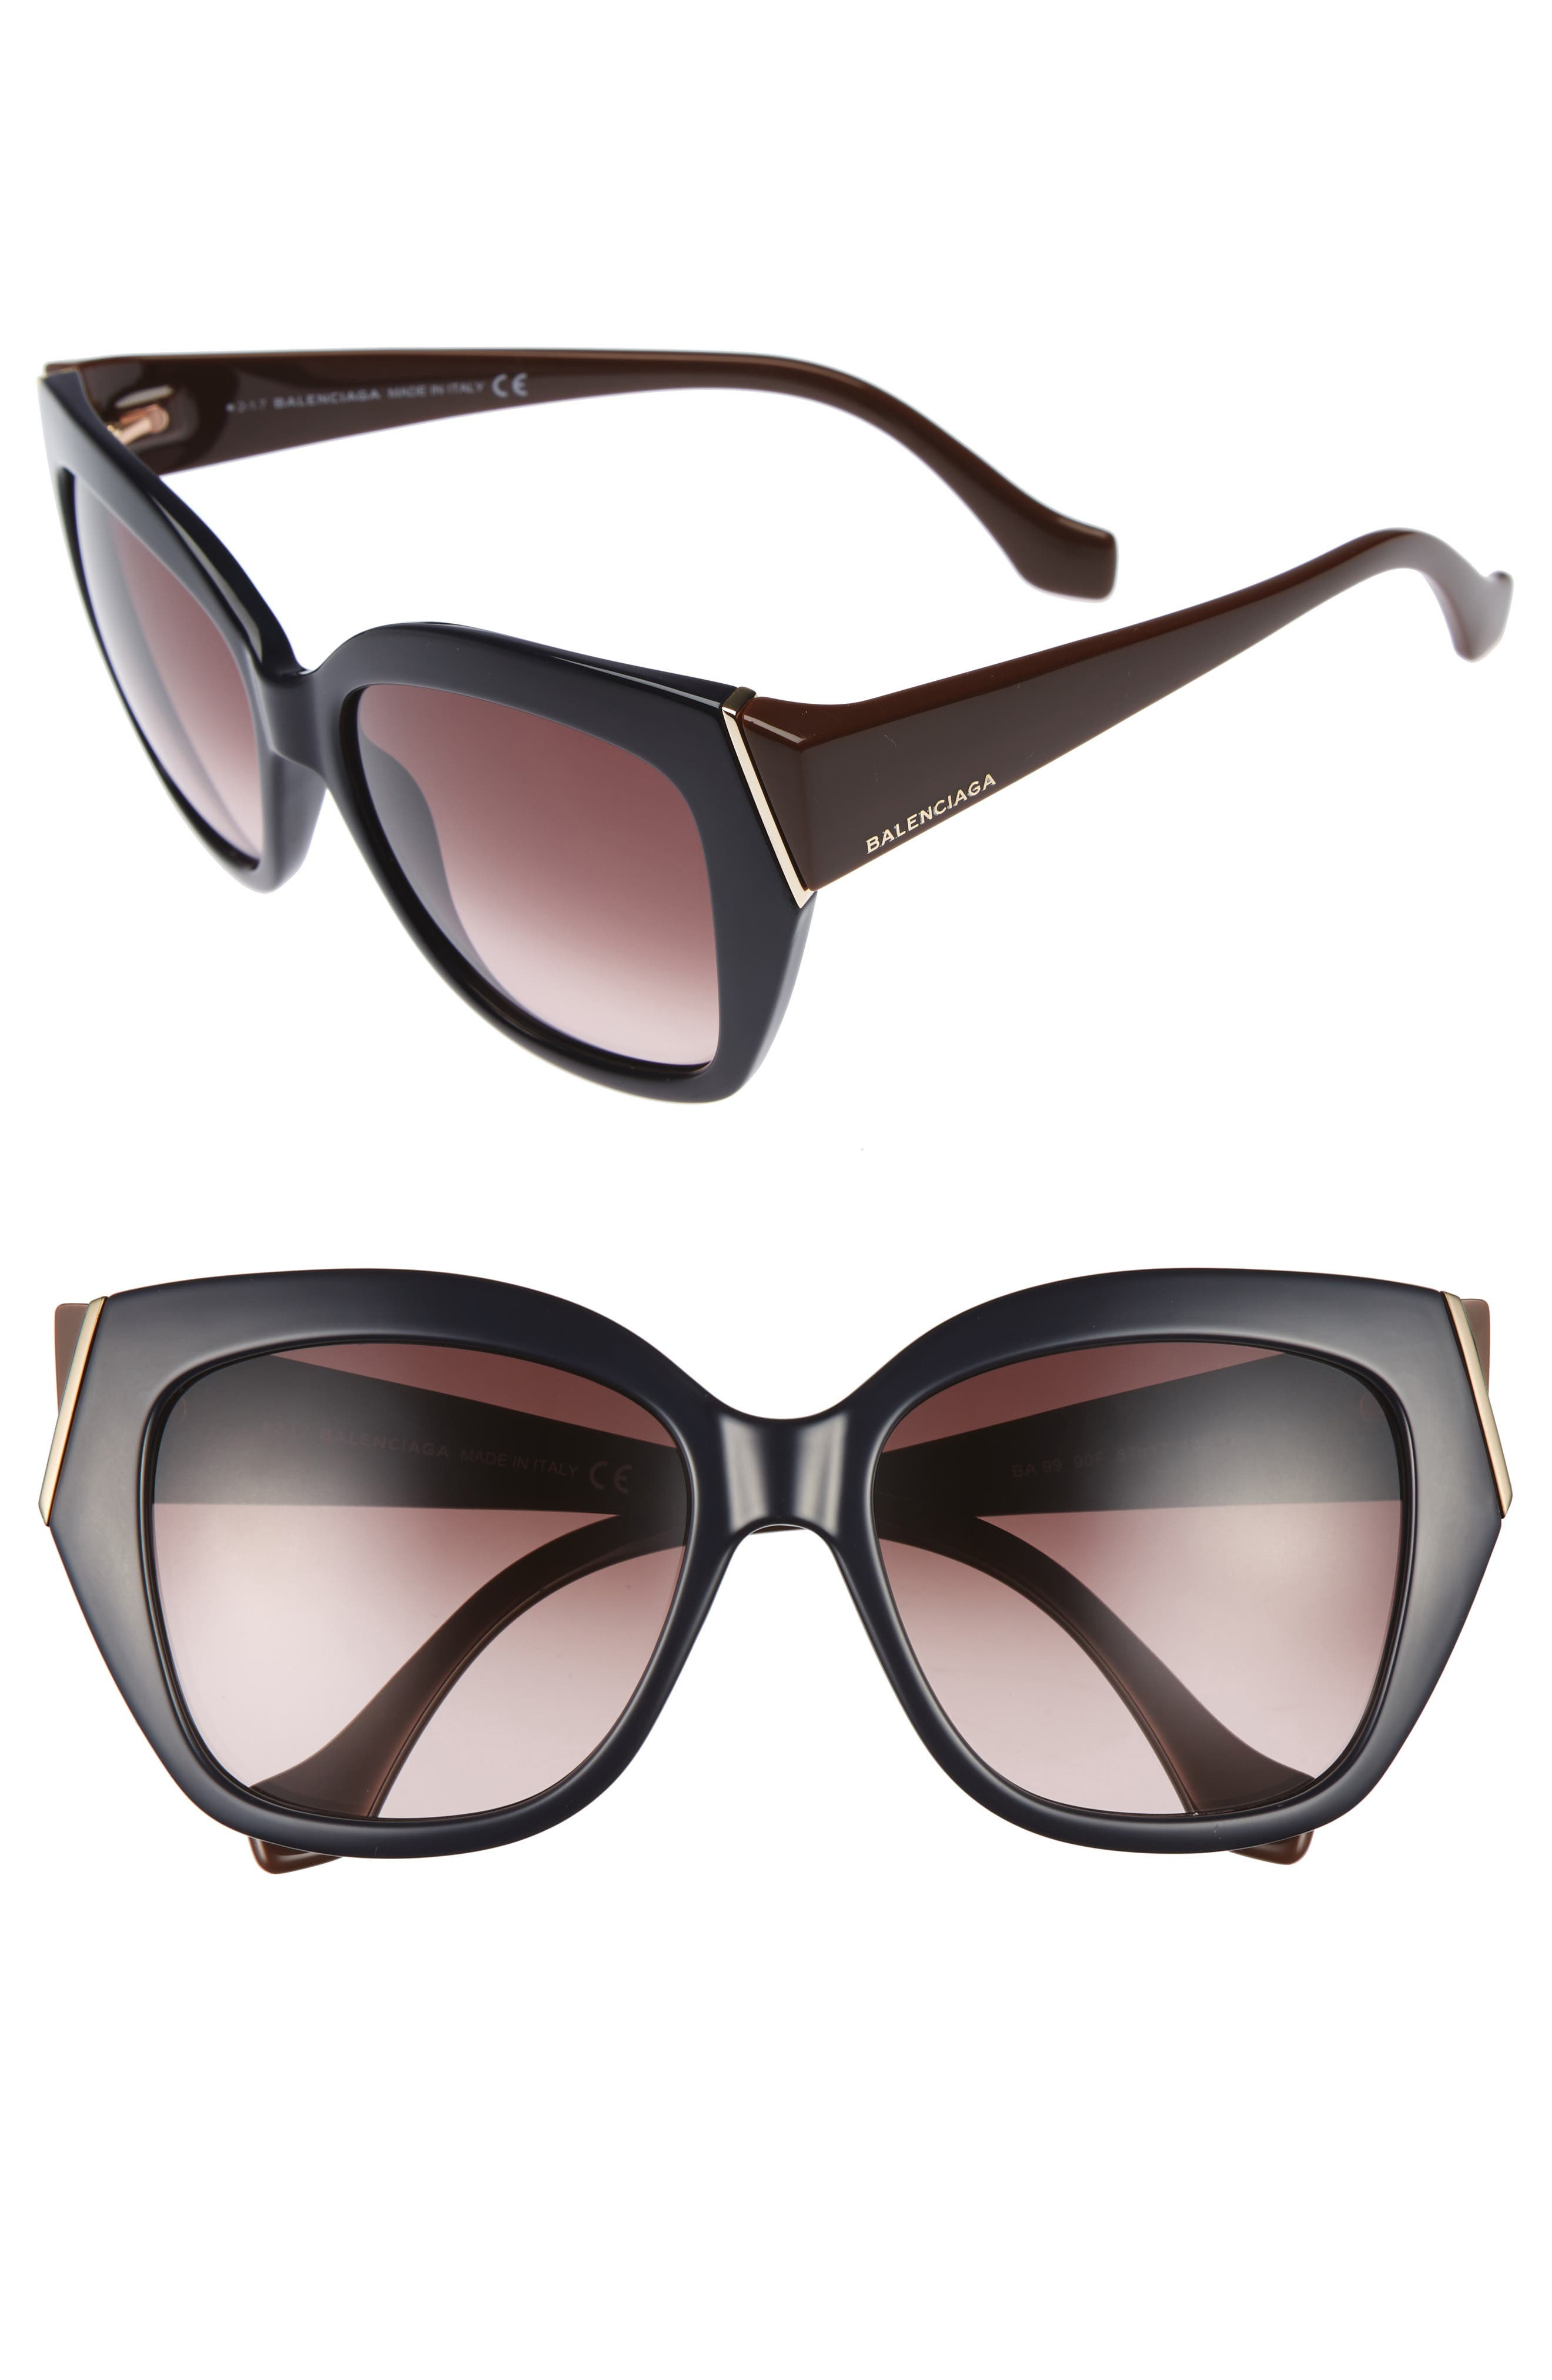 Alternate Image 1 Selected - Balenciaga 57mm Cat Eye Sunglasses